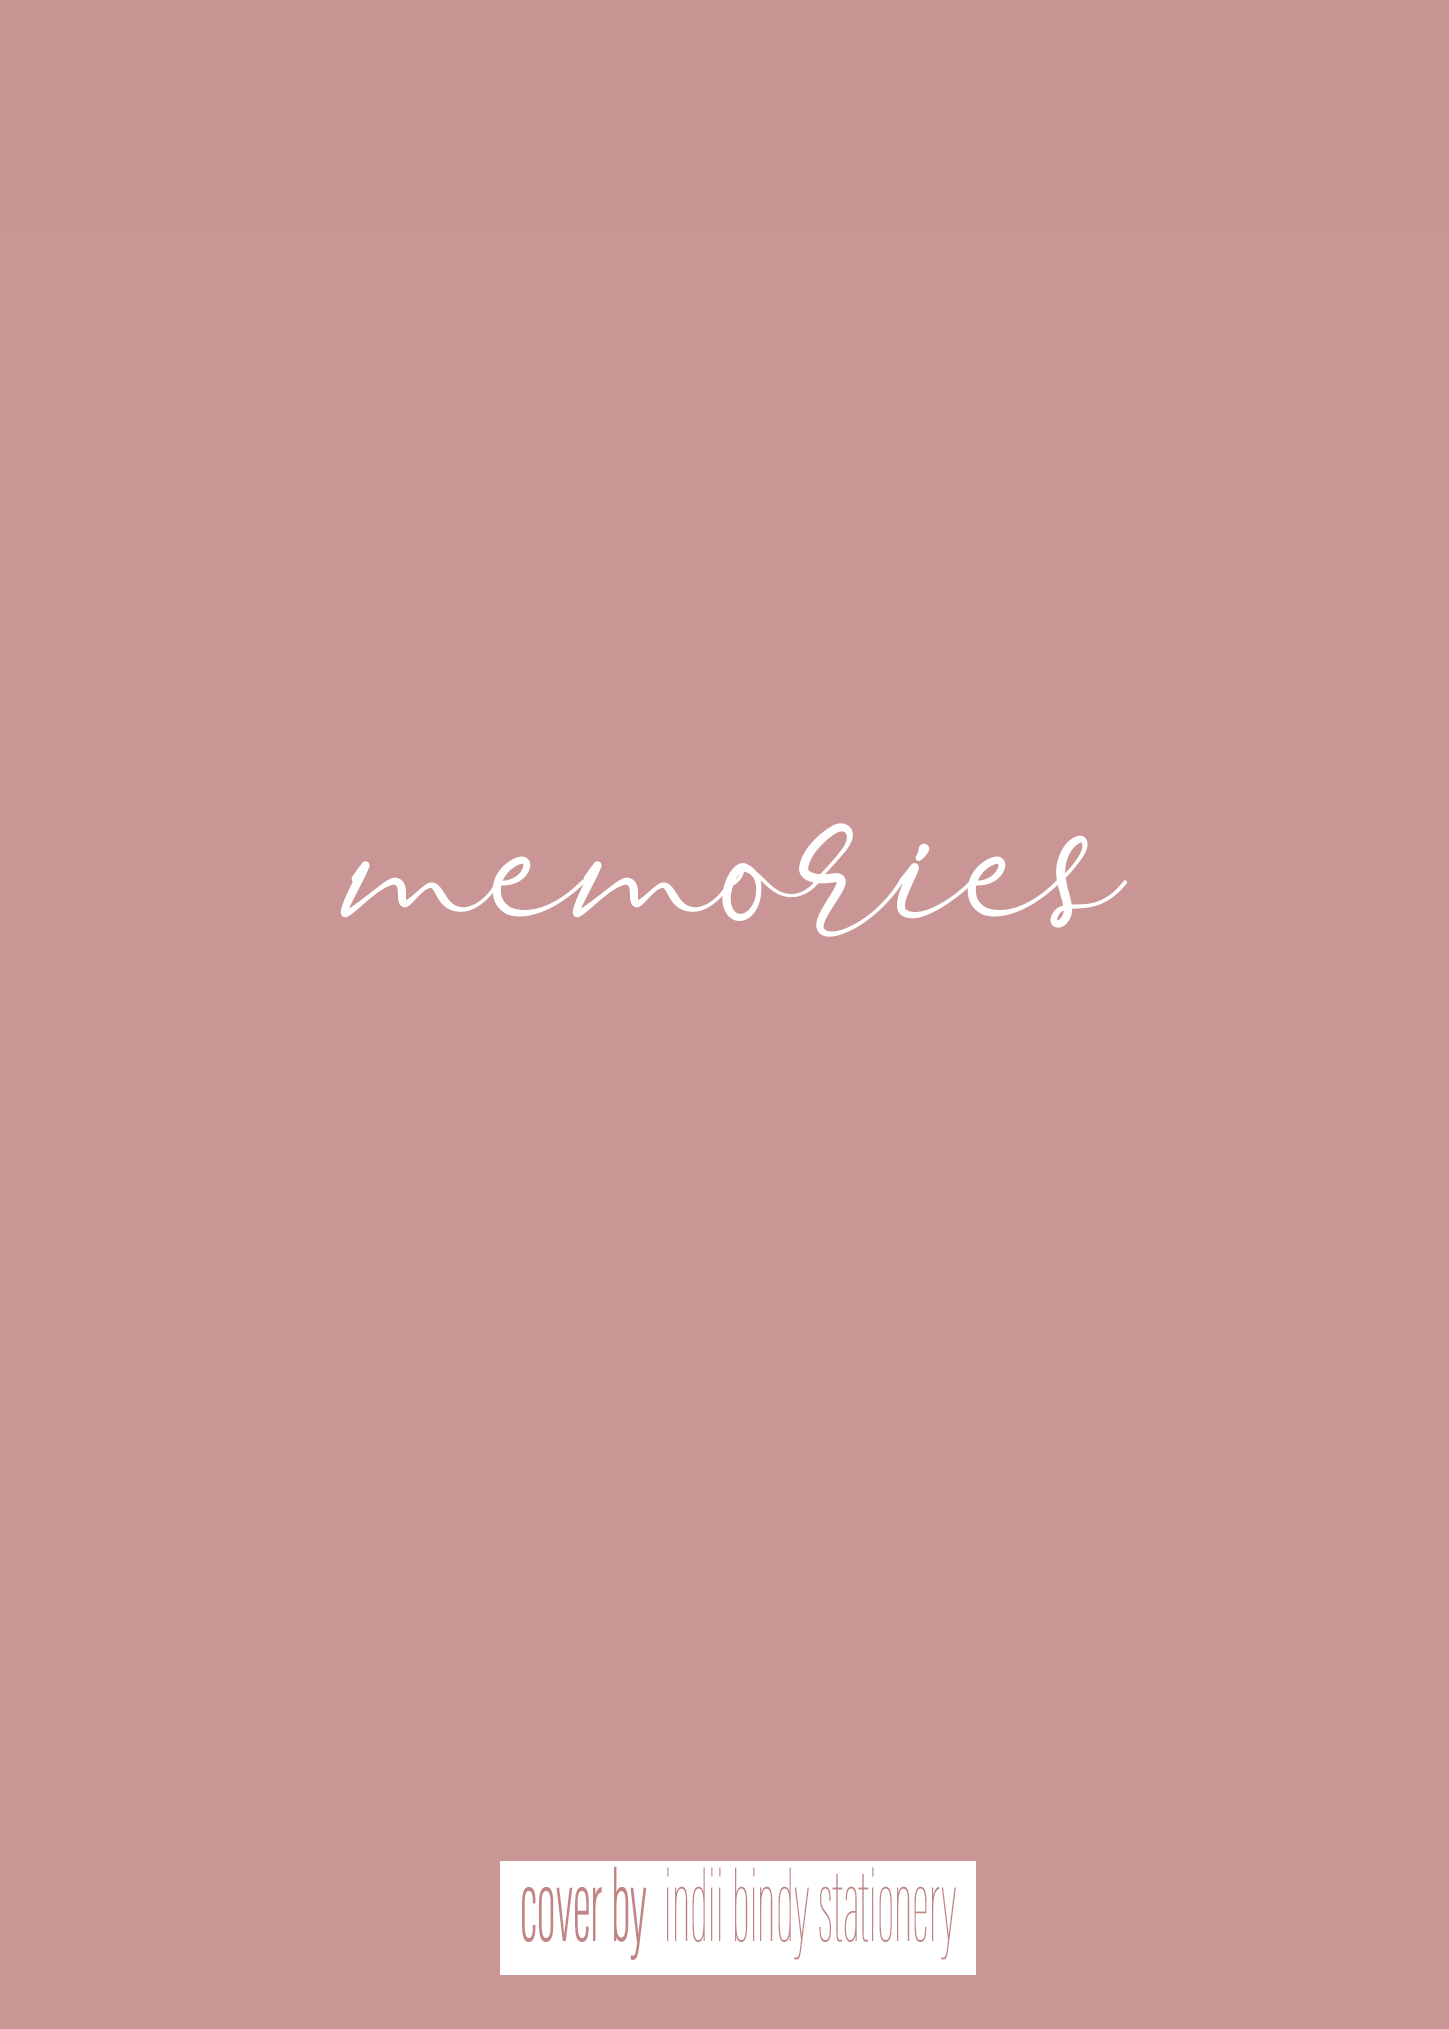 Pink Memories Instagram Cover Instagram Logo Instagram Highlight Icons Instagram Icons